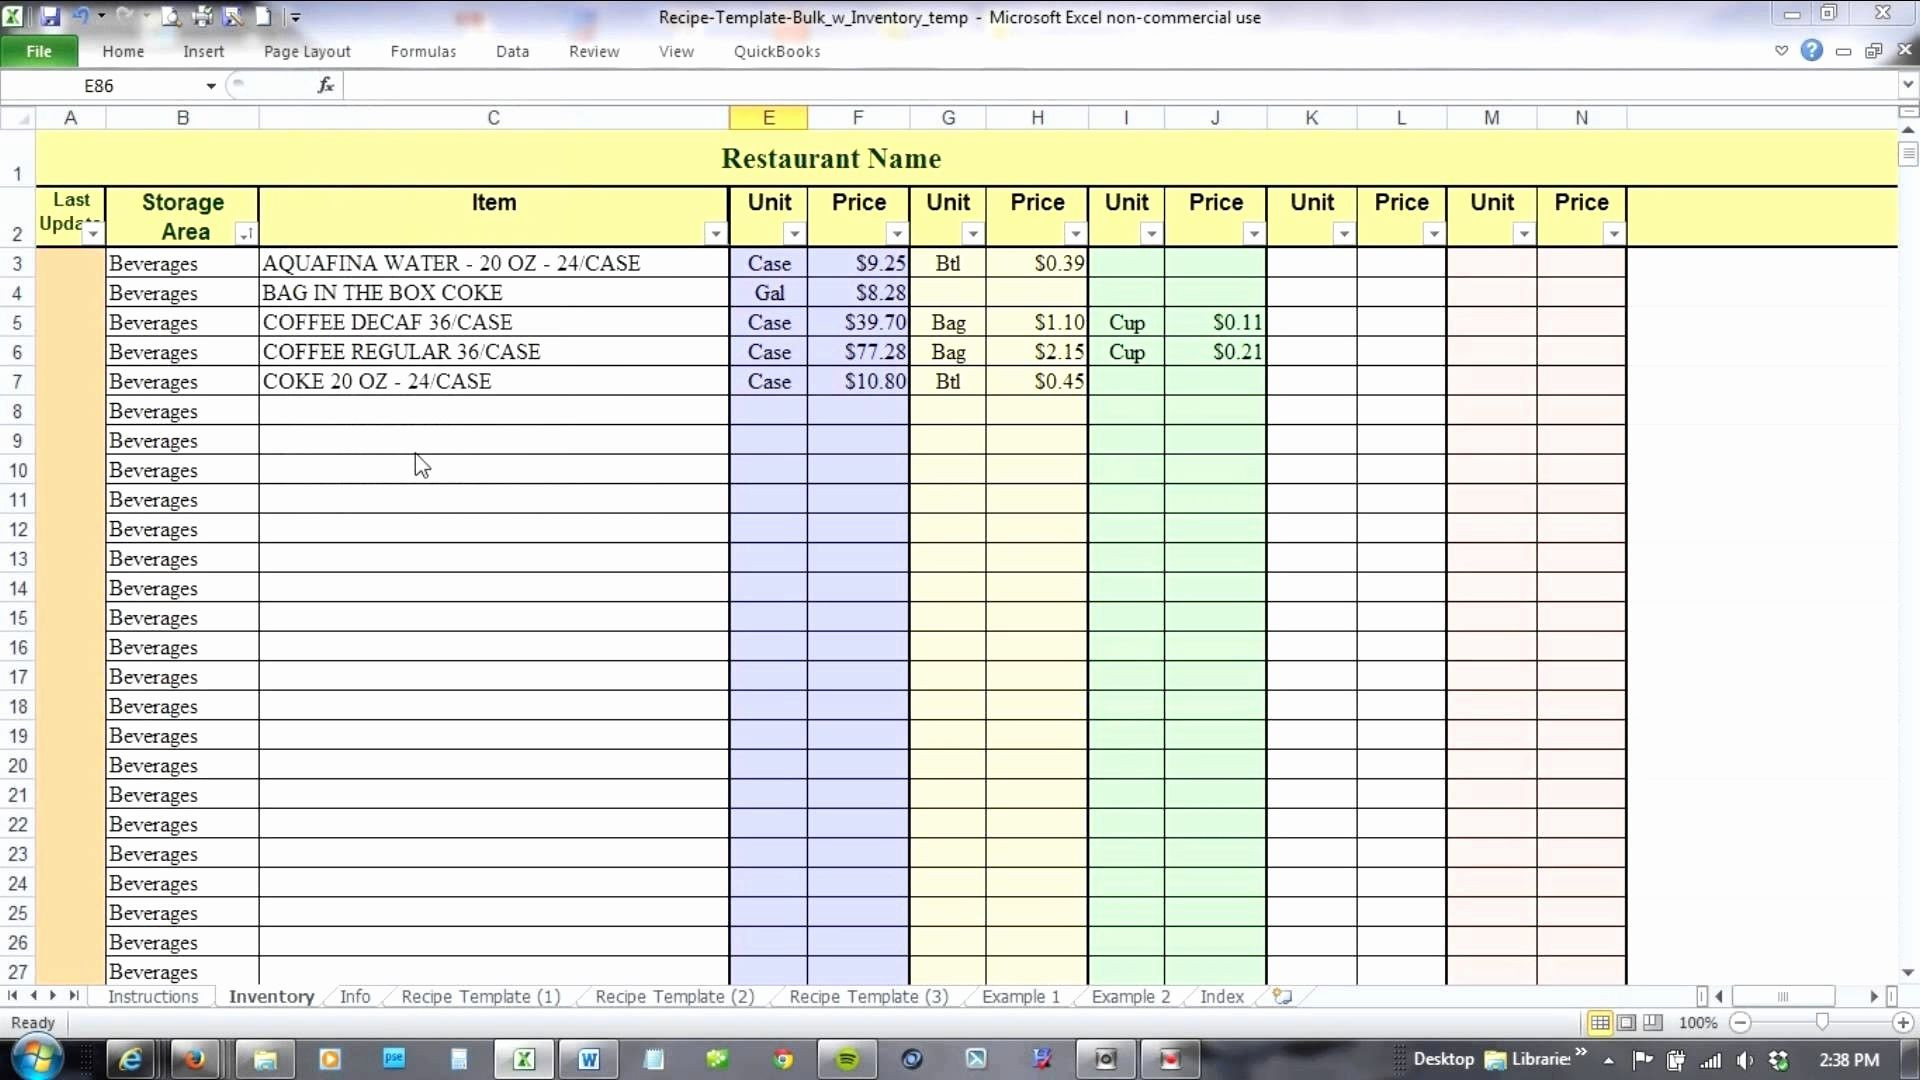 Personal Sample Excel Sheet With Sales Data Intended For Sample Excel Sheet With Sales Data Printable